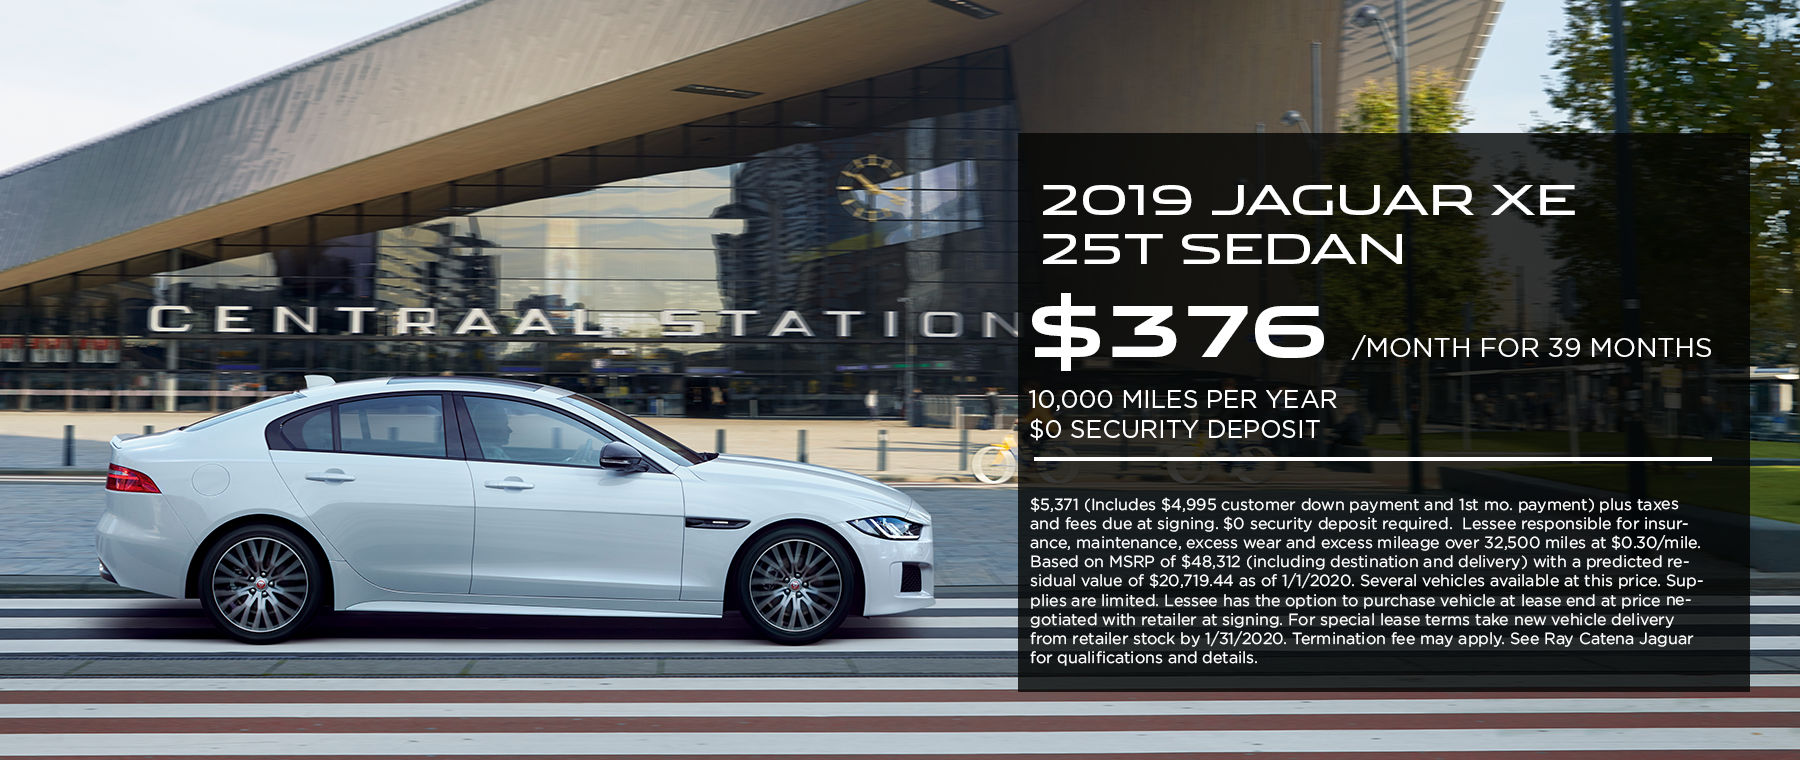 2019 Jaguar XE 25t Sedan · $376mo. · 39 mos. · 10,000 miles per year  $5,371 (Includes $4,995 customer down payment and 1st mo. payment) plus taxes and fees due at signing. $0 security deposit required.  Lessee responsible for insurance, maintenance, excess wear and excess mileage over 32,500 miles at $0.30/mile. Based on MSRP of $48,312 (including destination and delivery) with a predicted residual value of $20,719.44 as of 1/1/2020. Several vehicles available at this price. Supplies are limited. Lessee has the option to purchase vehicle at lease end at price negotiated with retailer at signing. For special lease terms take new vehicle delivery from retailer stock by 1/31/2020. Termination fee may apply. See Ray Catena Jaguar for qualifications and details. Click to view offer. White XE on road in front of a Central Station.